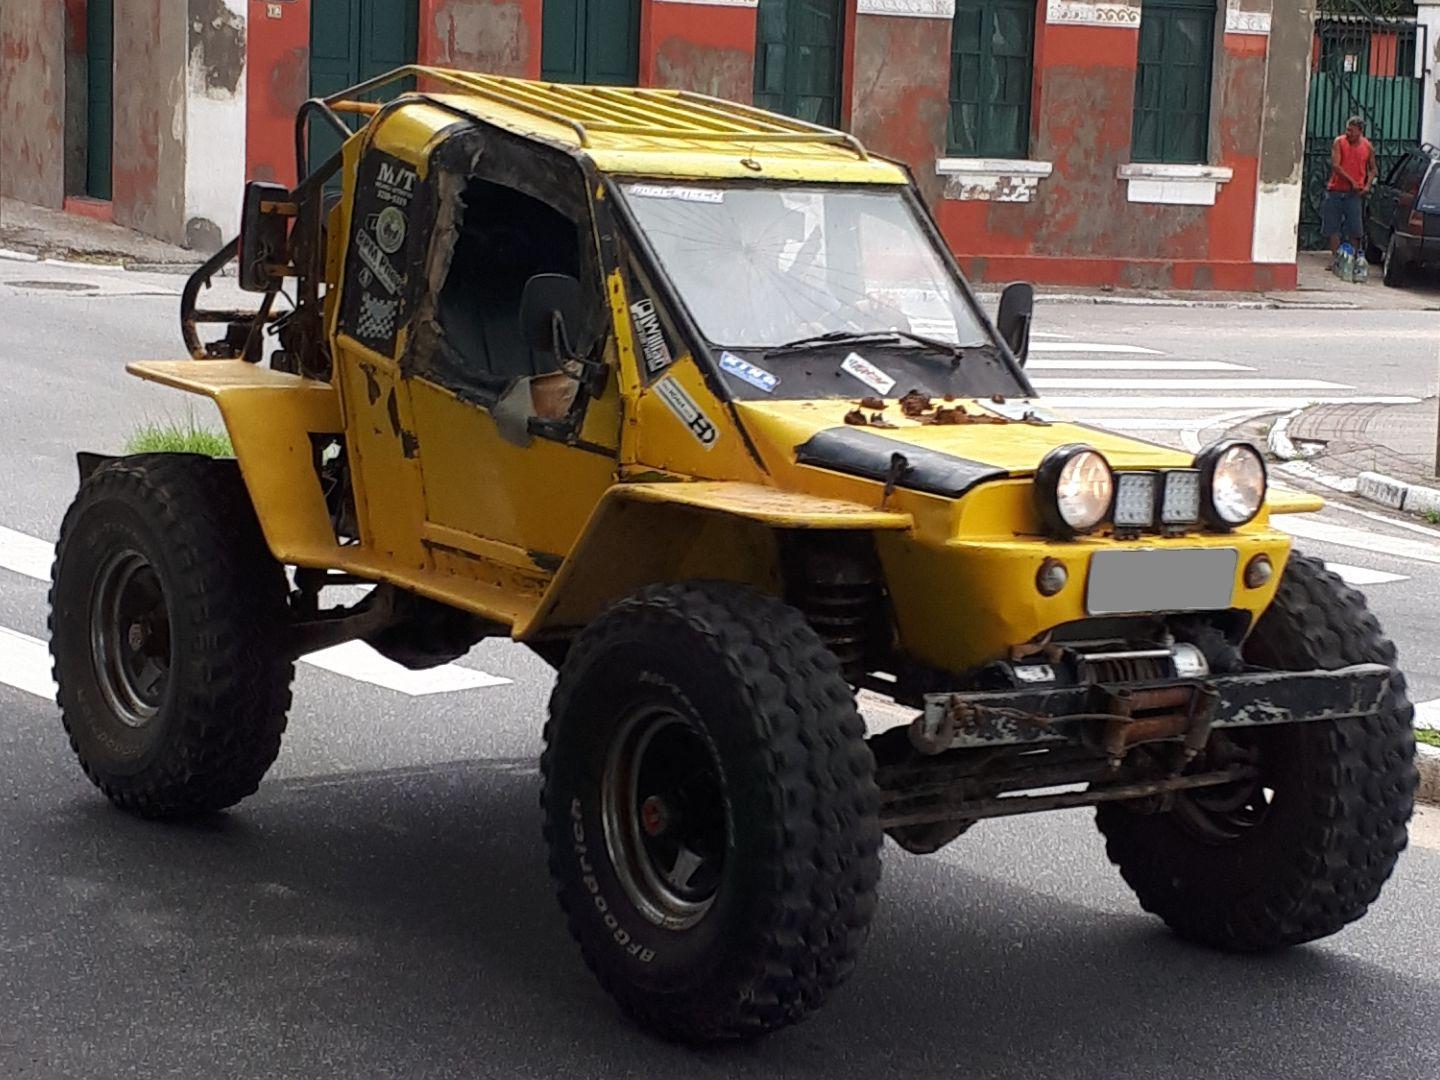 workaround ideas to discuss among friends: 4WD sand-rail buggy